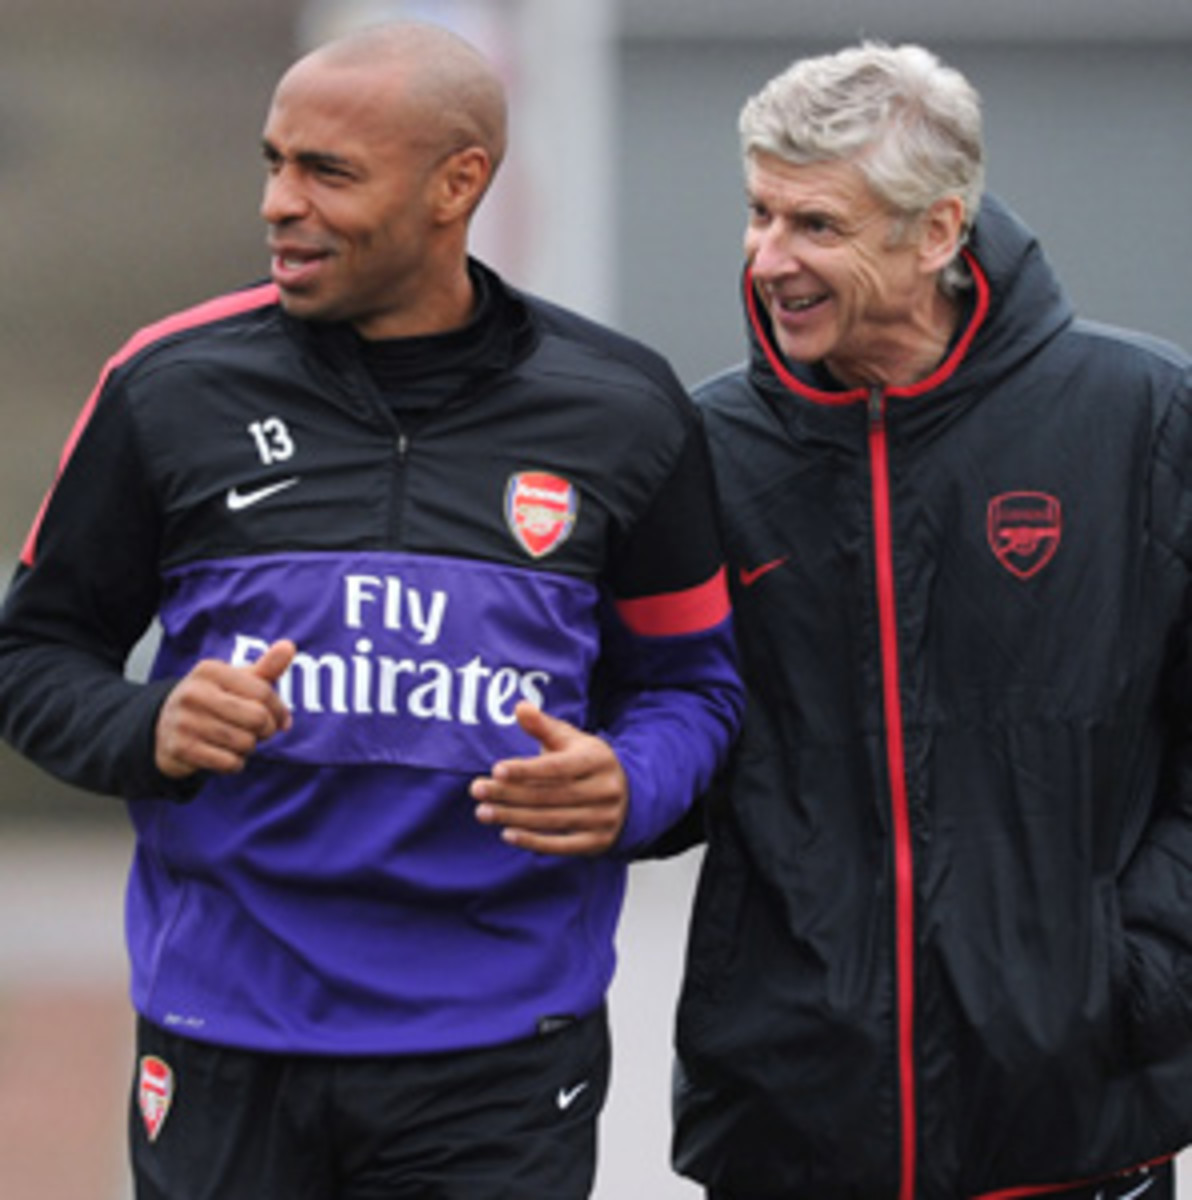 Thierry Henry (left) is currently training with Arene Wenger's Arsenal squad during the offseason in Major League Soccer.